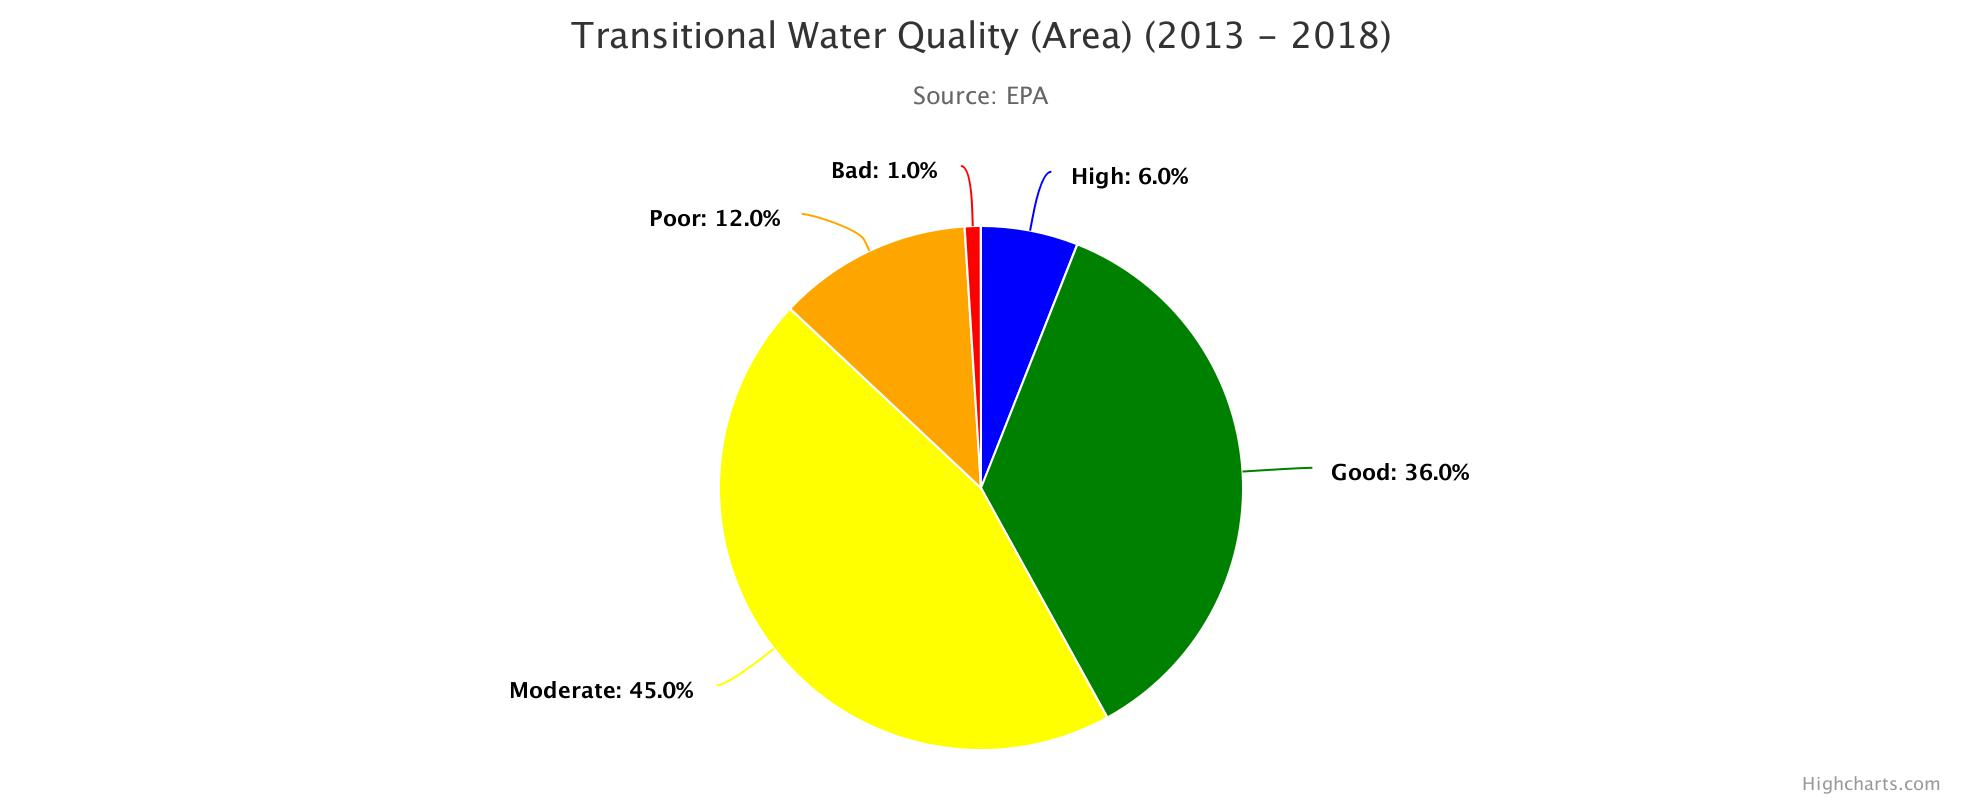 Transitional Water Quality 2013 - 2018 HighChart Image